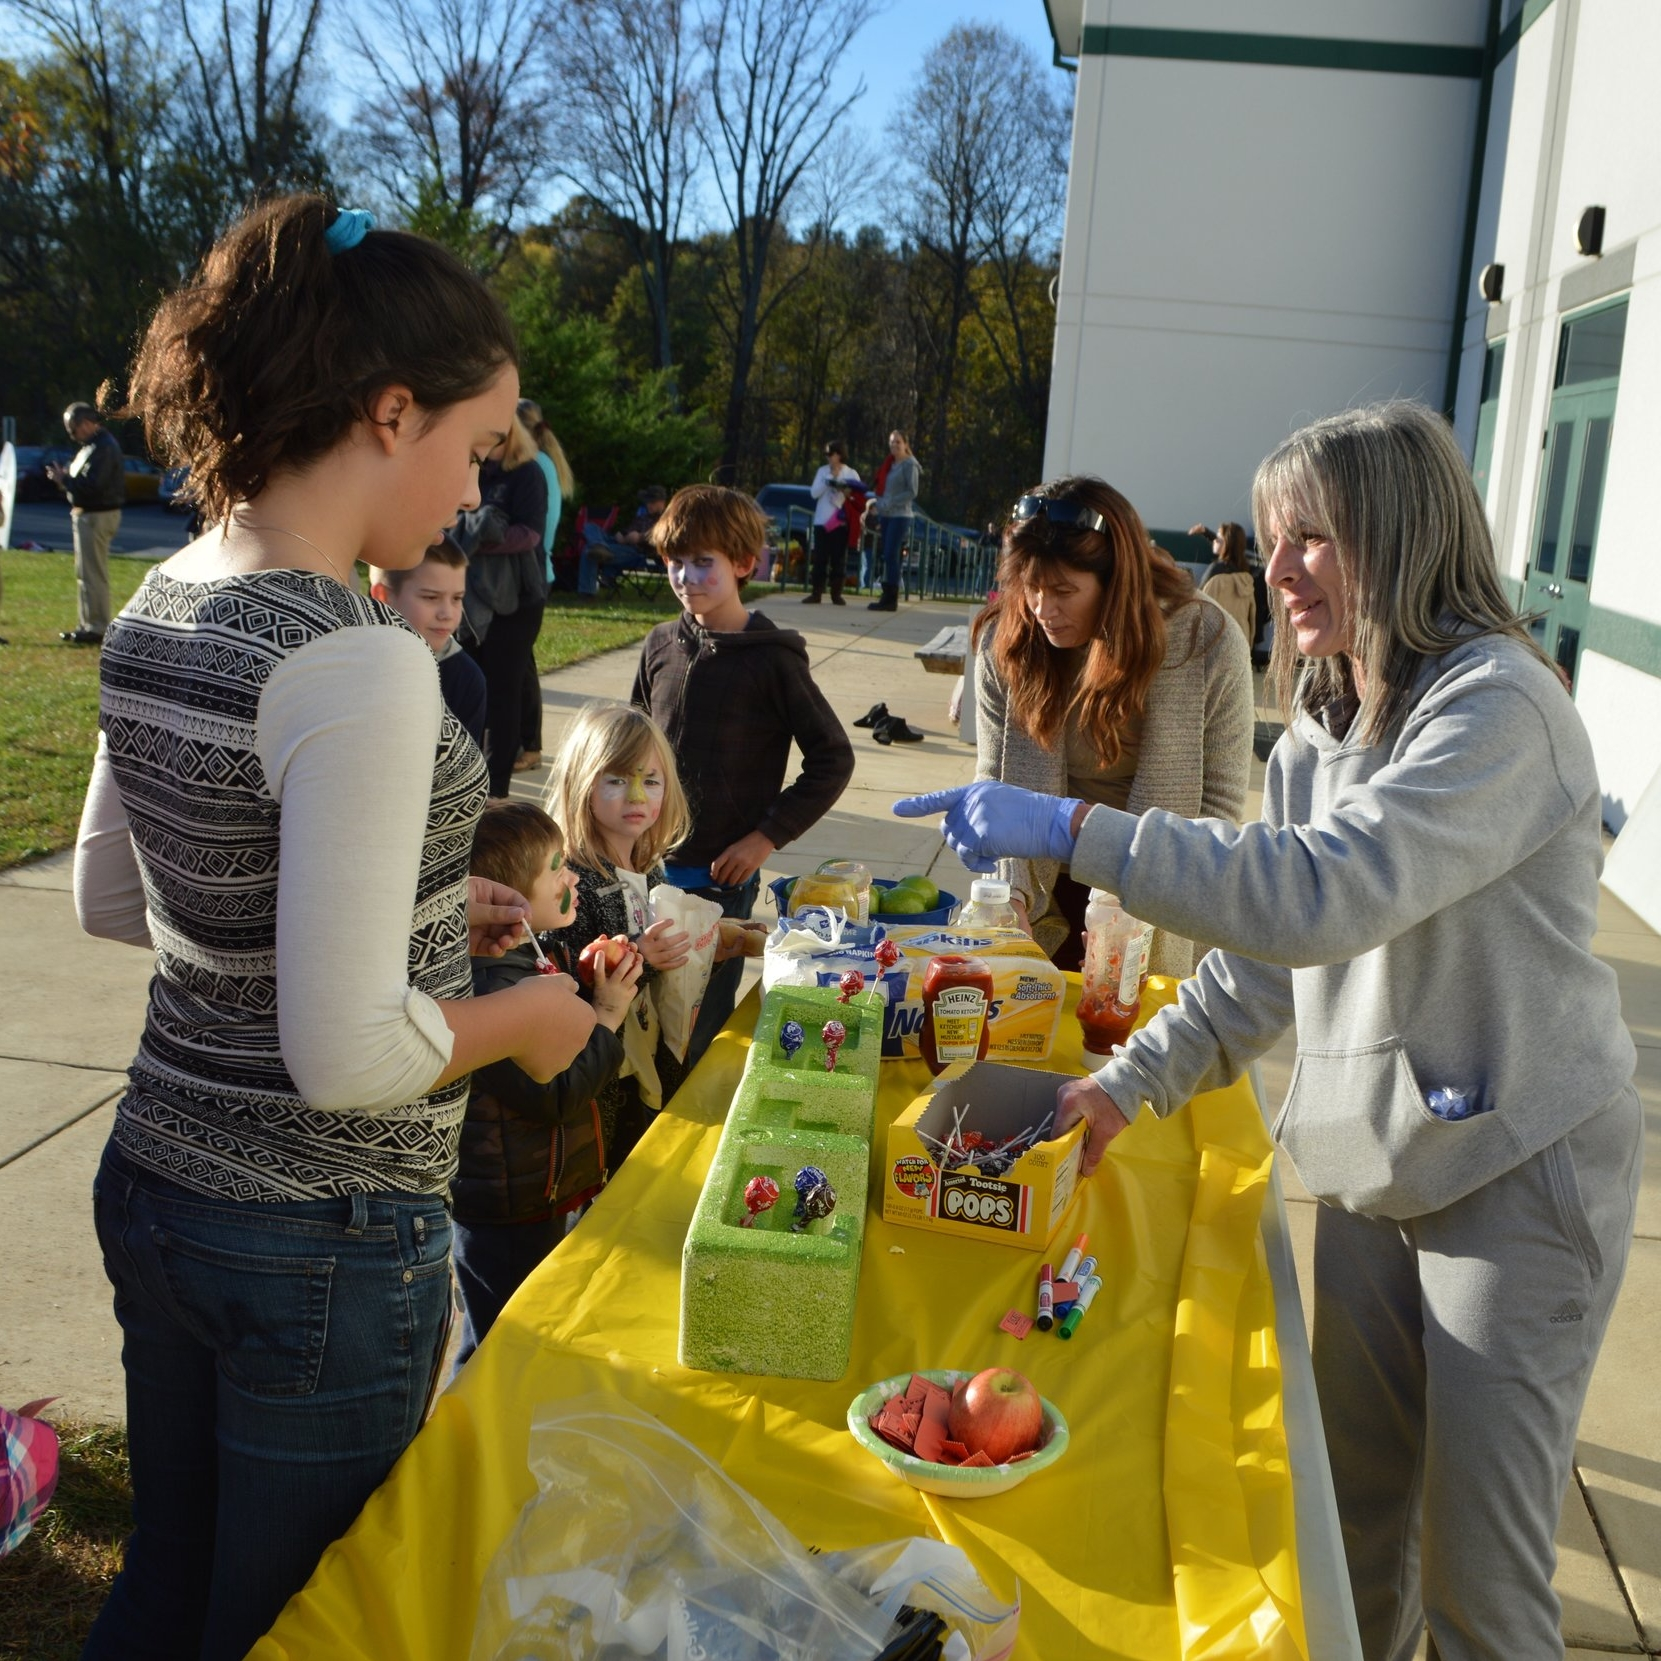 Friends Community Cooperative (FCC) - The FCC is our parent organization - a more organic, consensus-based group than your typical PTA. Monthly meetings help parents host dances, run our lunch delivery program, plan fundraisers, and plan & staff our big, public events. The FCC is a great way for parents to have a say in what happens at the school!